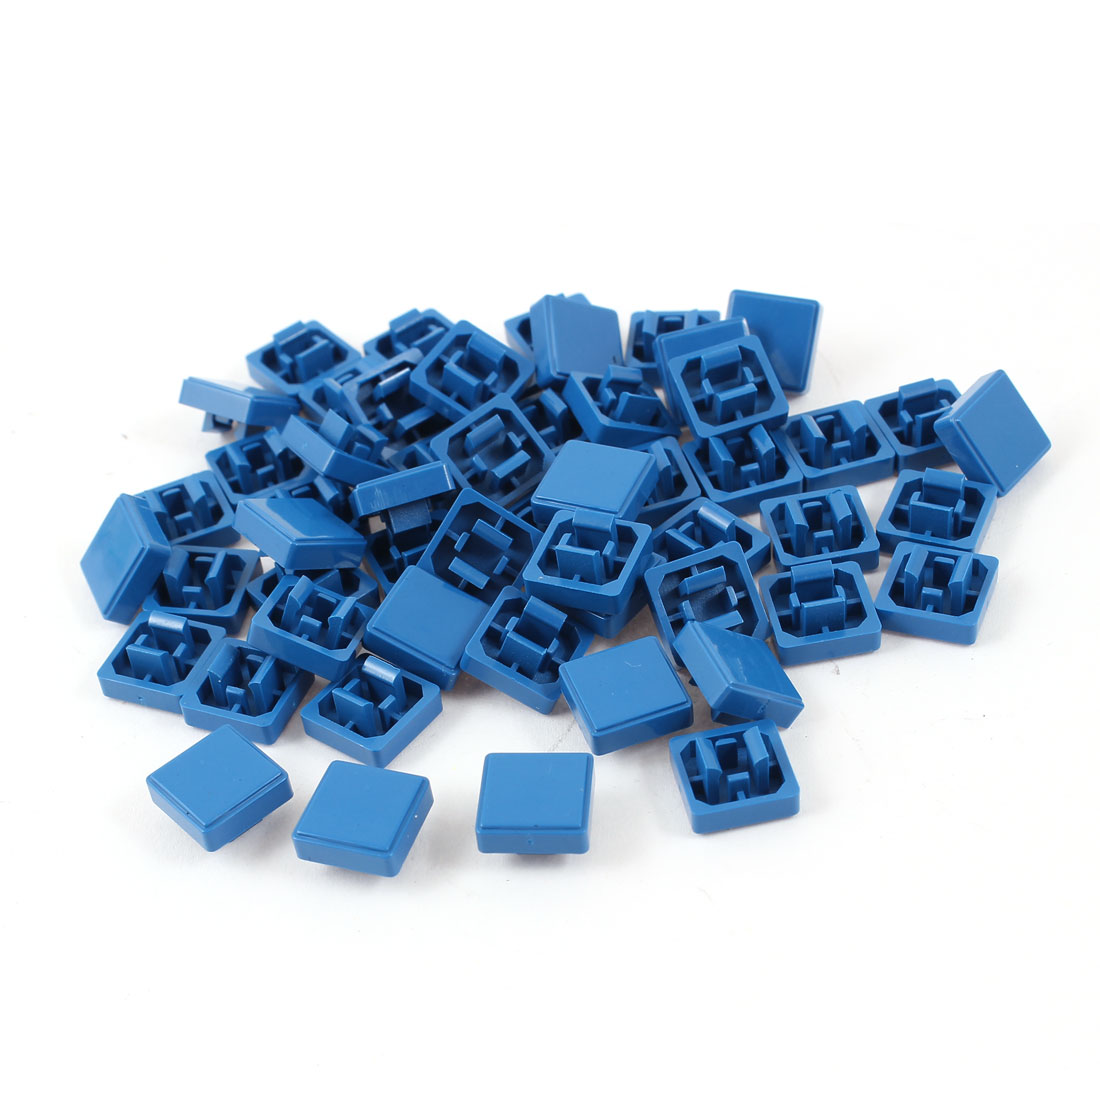 55 Pcs Square Shaped Tactile Button Caps Covers Protector Blue for 12mmx12 Tact Switch